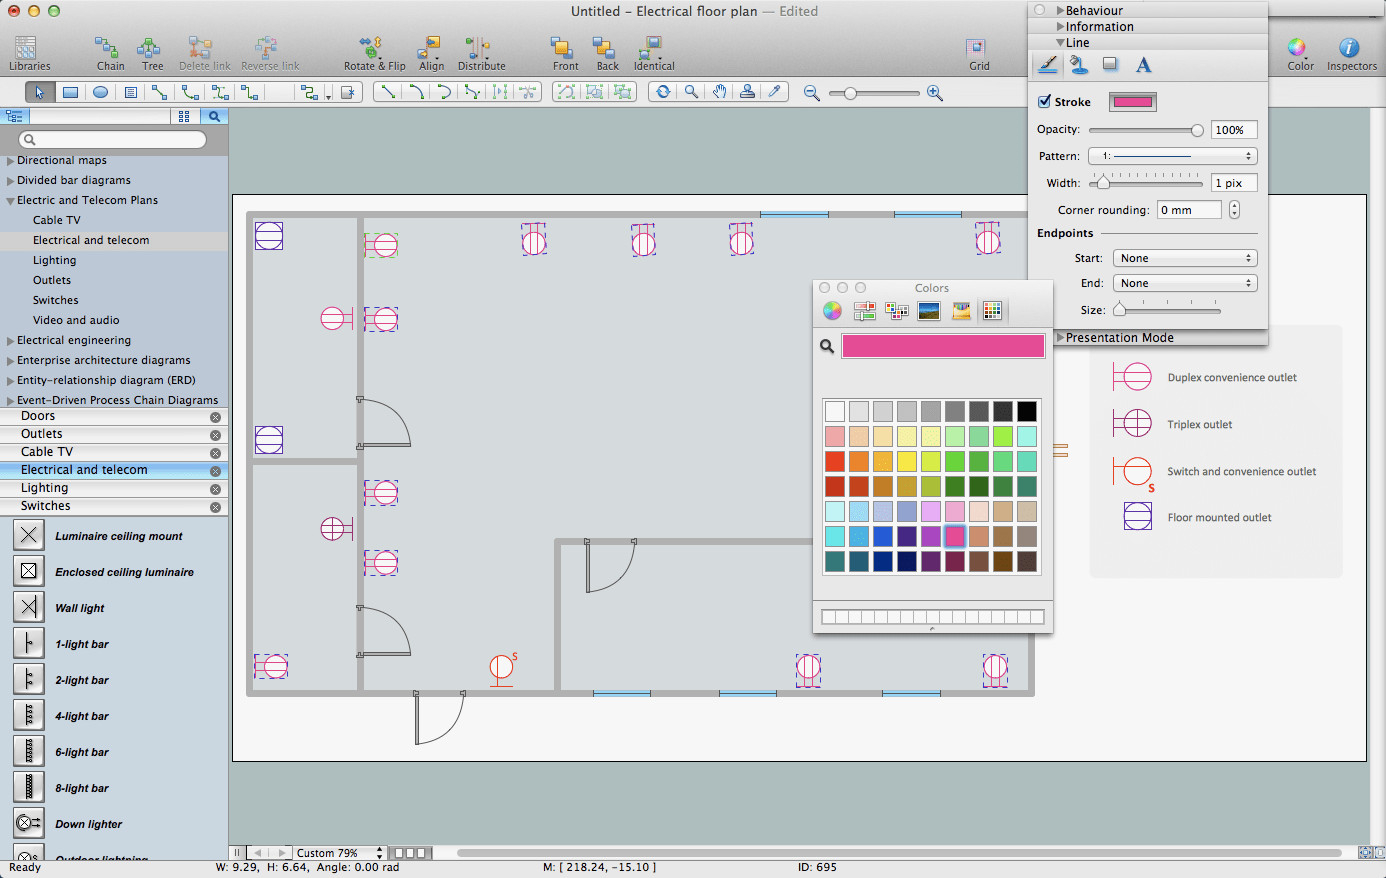 Home Wiring Plan | Wiring Library - Home Wiring Diagram Software